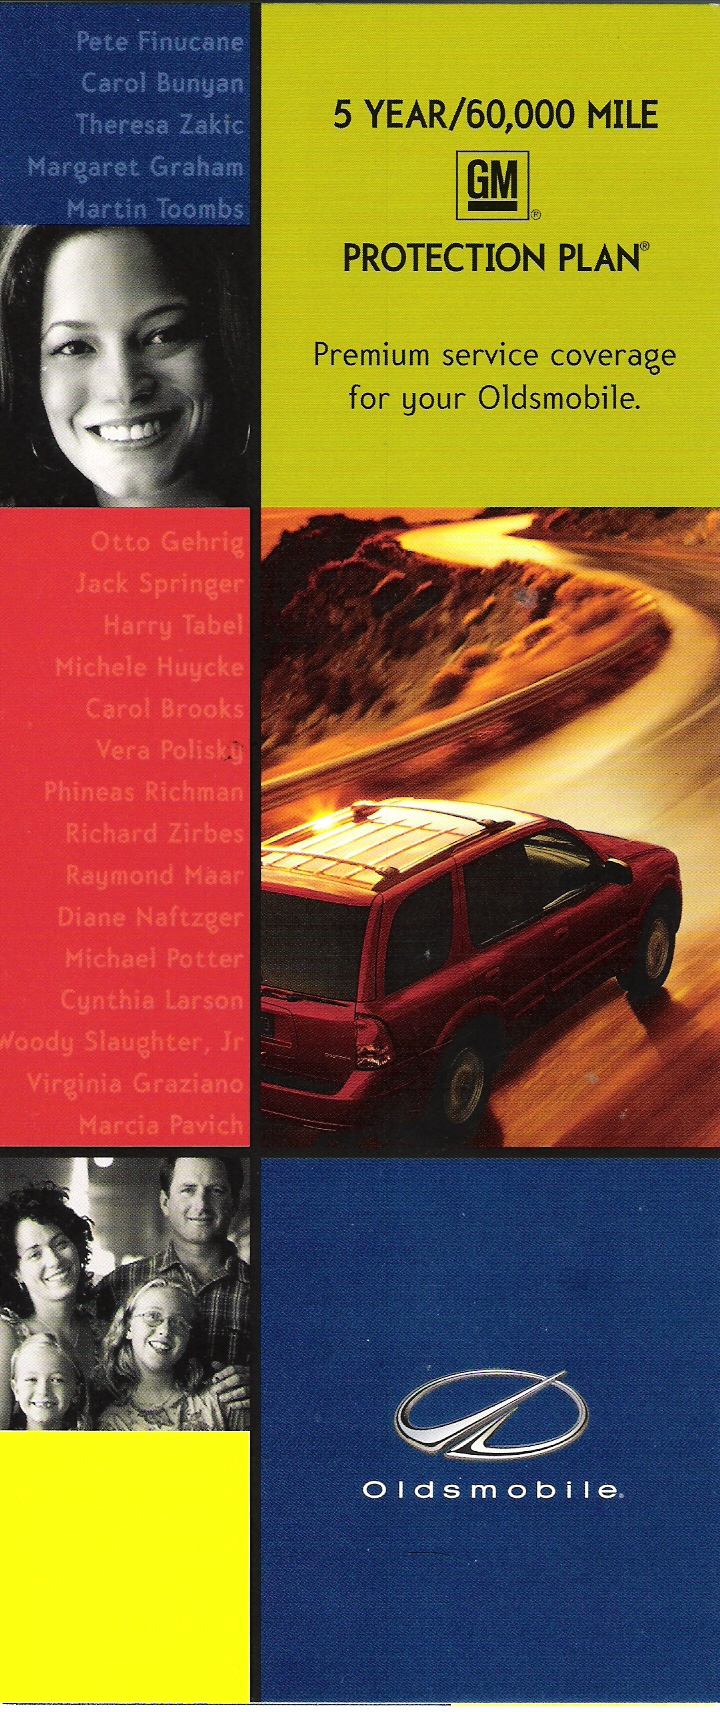 GM Oldsmobile - 5 Year/60,000 mile GM protection plan brochure (front cover)